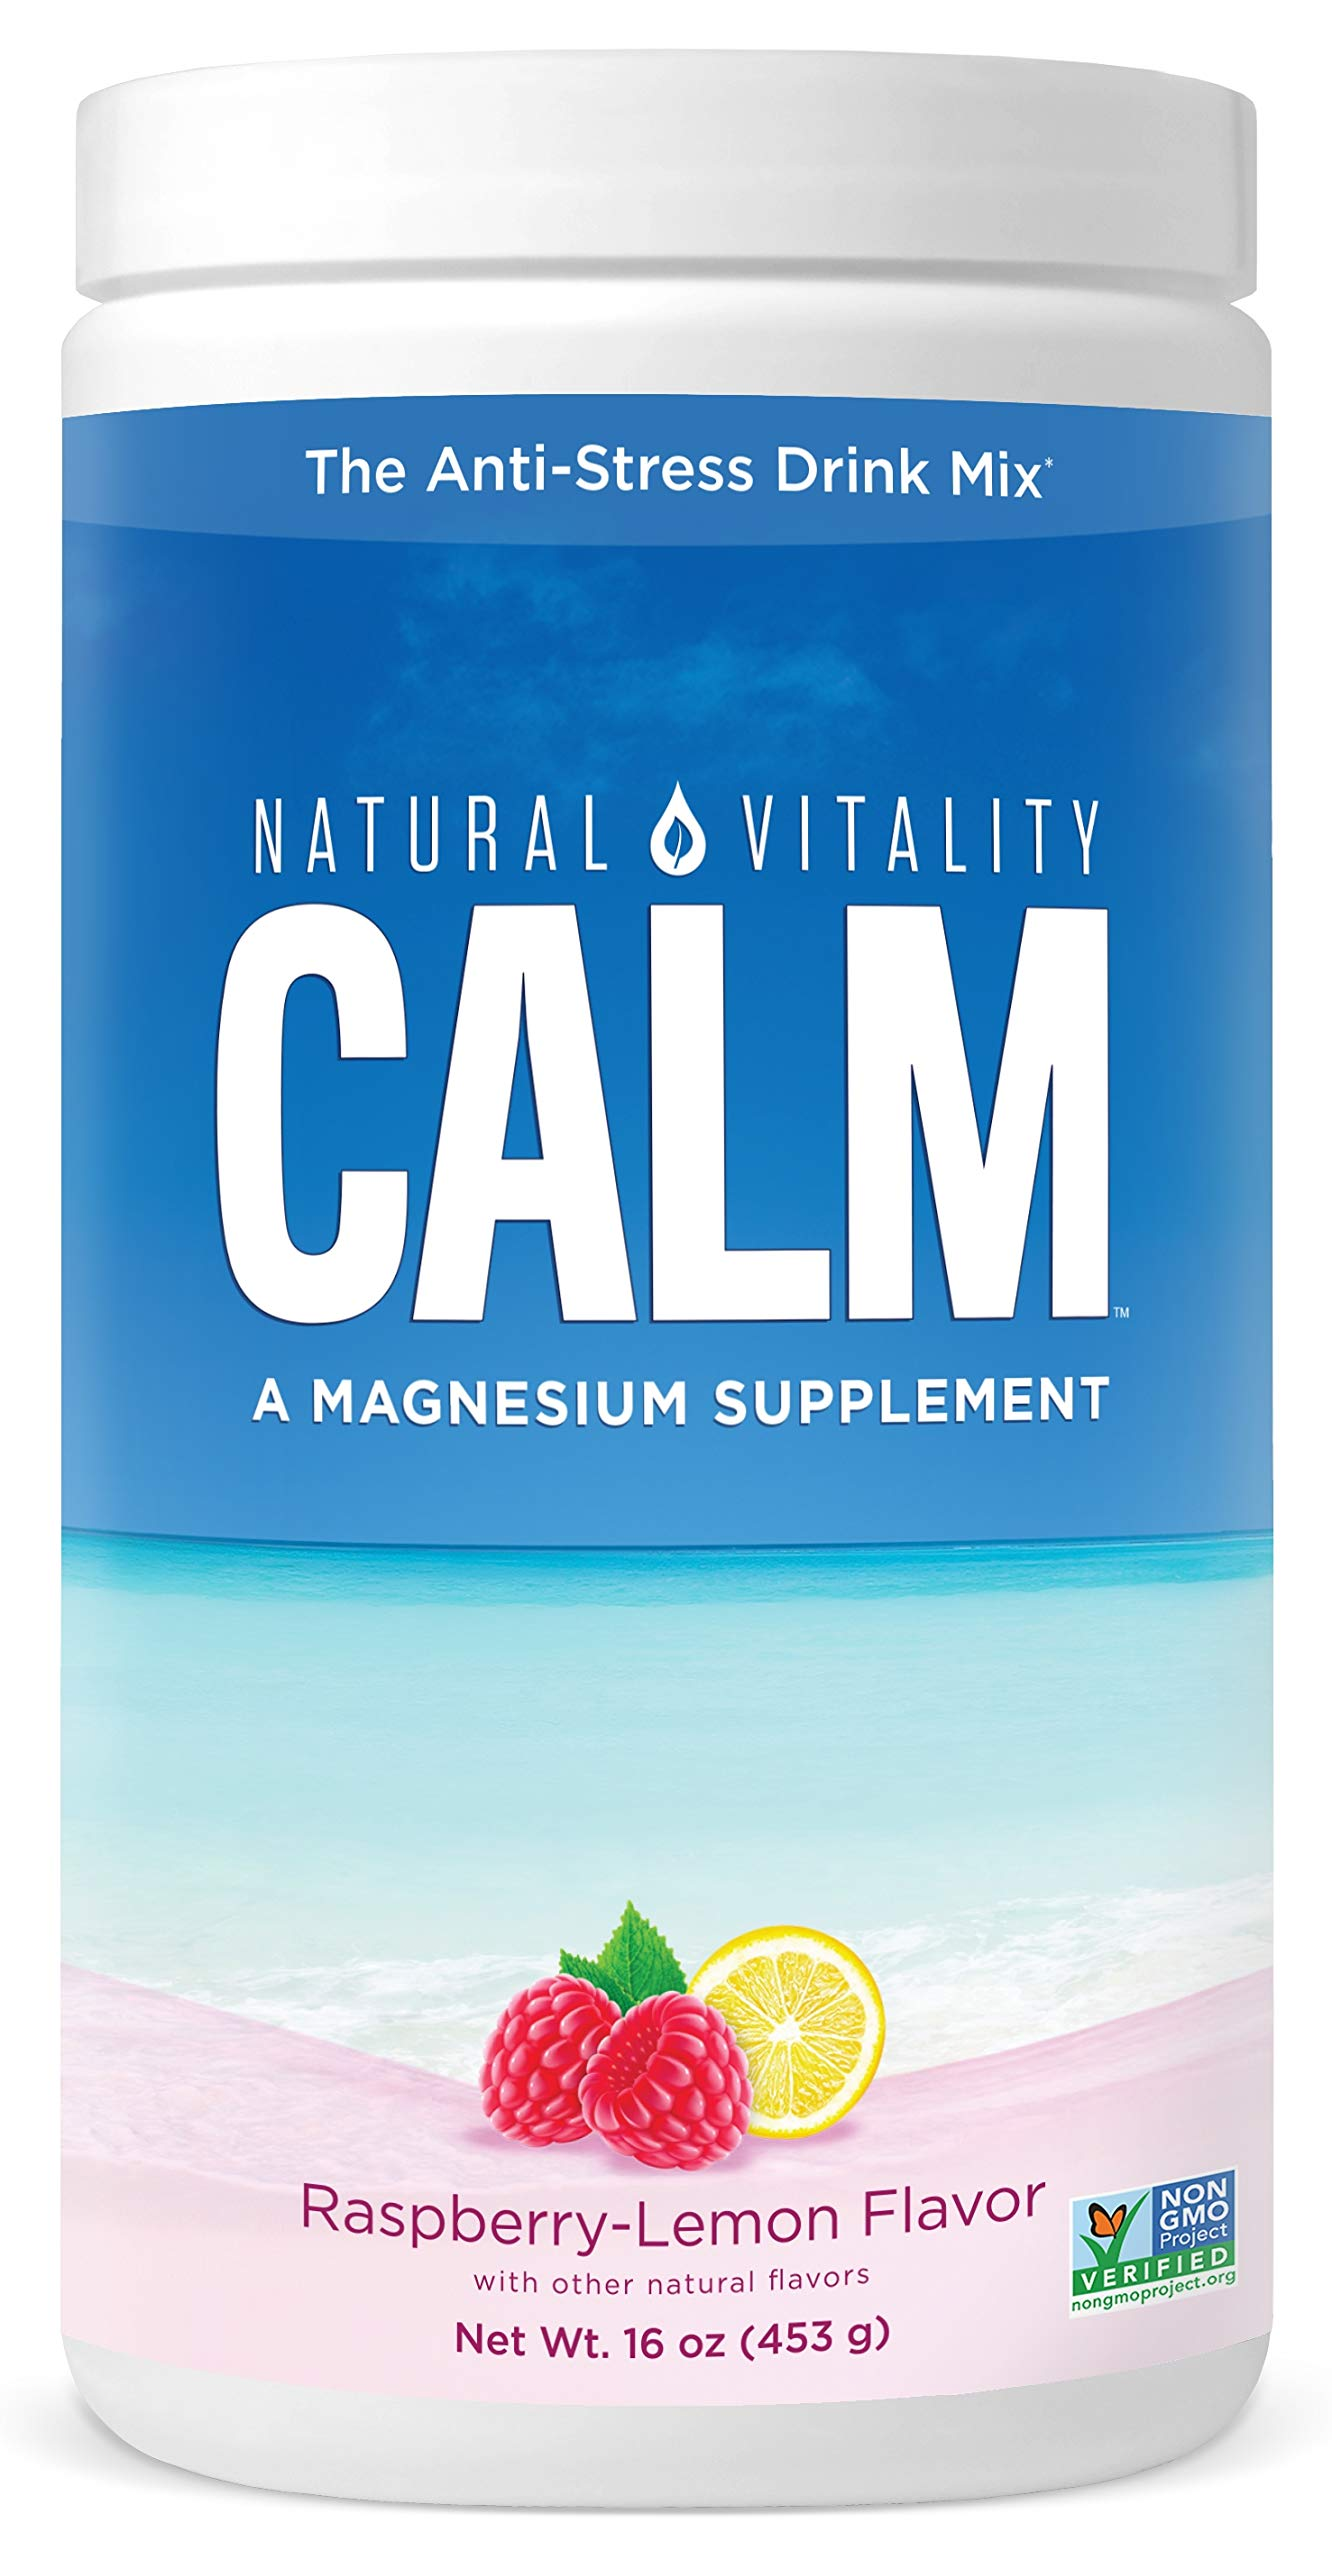 Natural Vitality - Natural Vitality Calm #1 Selling Magnesium Citrate Supplement, Anti-Stress Magnesium Supplement Drink Mix Powder- Raspberry Lemon, Vegan, Gluten Free and Non-GMO (Package May Vary), 16 oz 113 Servings